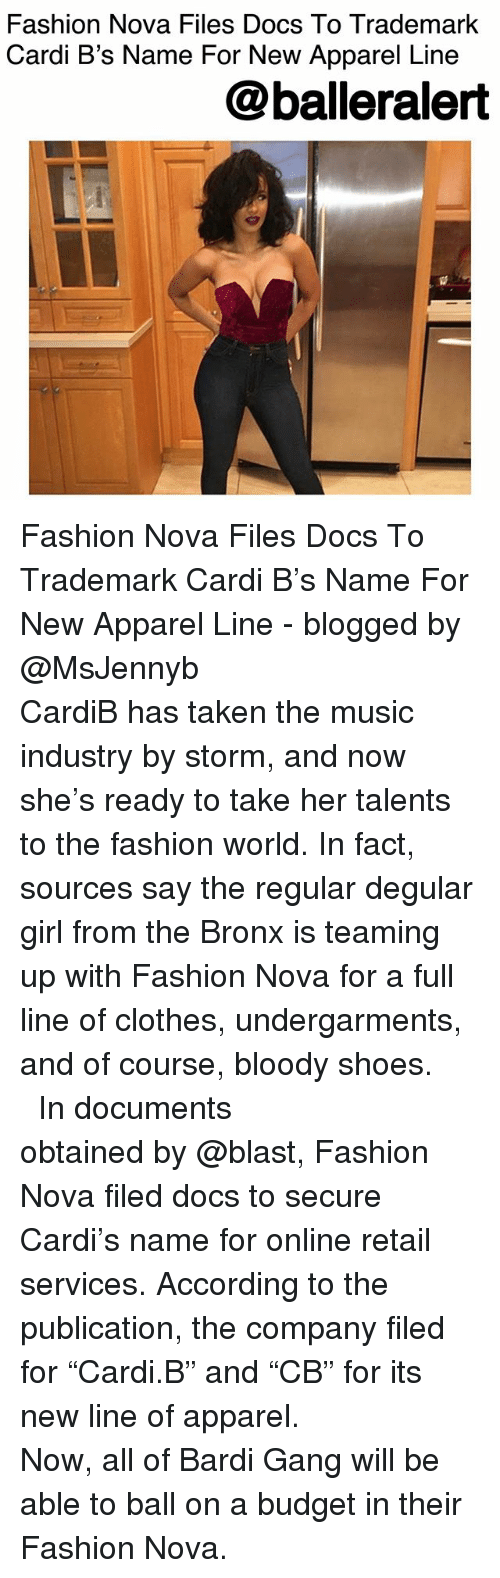 "Clothes, Fashion, and Memes: Fashion Nova Files Docs To Trademark  Cardi B's Name For New Apparel Line  @balleralert Fashion Nova Files Docs To Trademark Cardi B's Name For New Apparel Line - blogged by @MsJennyb ⠀⠀⠀⠀⠀⠀⠀⠀⠀ ⠀⠀⠀⠀⠀⠀⠀⠀⠀ CardiB has taken the music industry by storm, and now she's ready to take her talents to the fashion world. In fact, sources say the regular degular girl from the Bronx is teaming up with Fashion Nova for a full line of clothes, undergarments, and of course, bloody shoes. ⠀⠀⠀⠀⠀⠀⠀⠀⠀ ⠀⠀⠀⠀⠀⠀⠀⠀⠀ In documents obtained by @blast, Fashion Nova filed docs to secure Cardi's name for online retail services. According to the publication, the company filed for ""Cardi.B"" and ""CB"" for its new line of apparel. ⠀⠀⠀⠀⠀⠀⠀⠀⠀ ⠀⠀⠀⠀⠀⠀⠀⠀⠀ Now, all of Bardi Gang will be able to ball on a budget in their Fashion Nova."